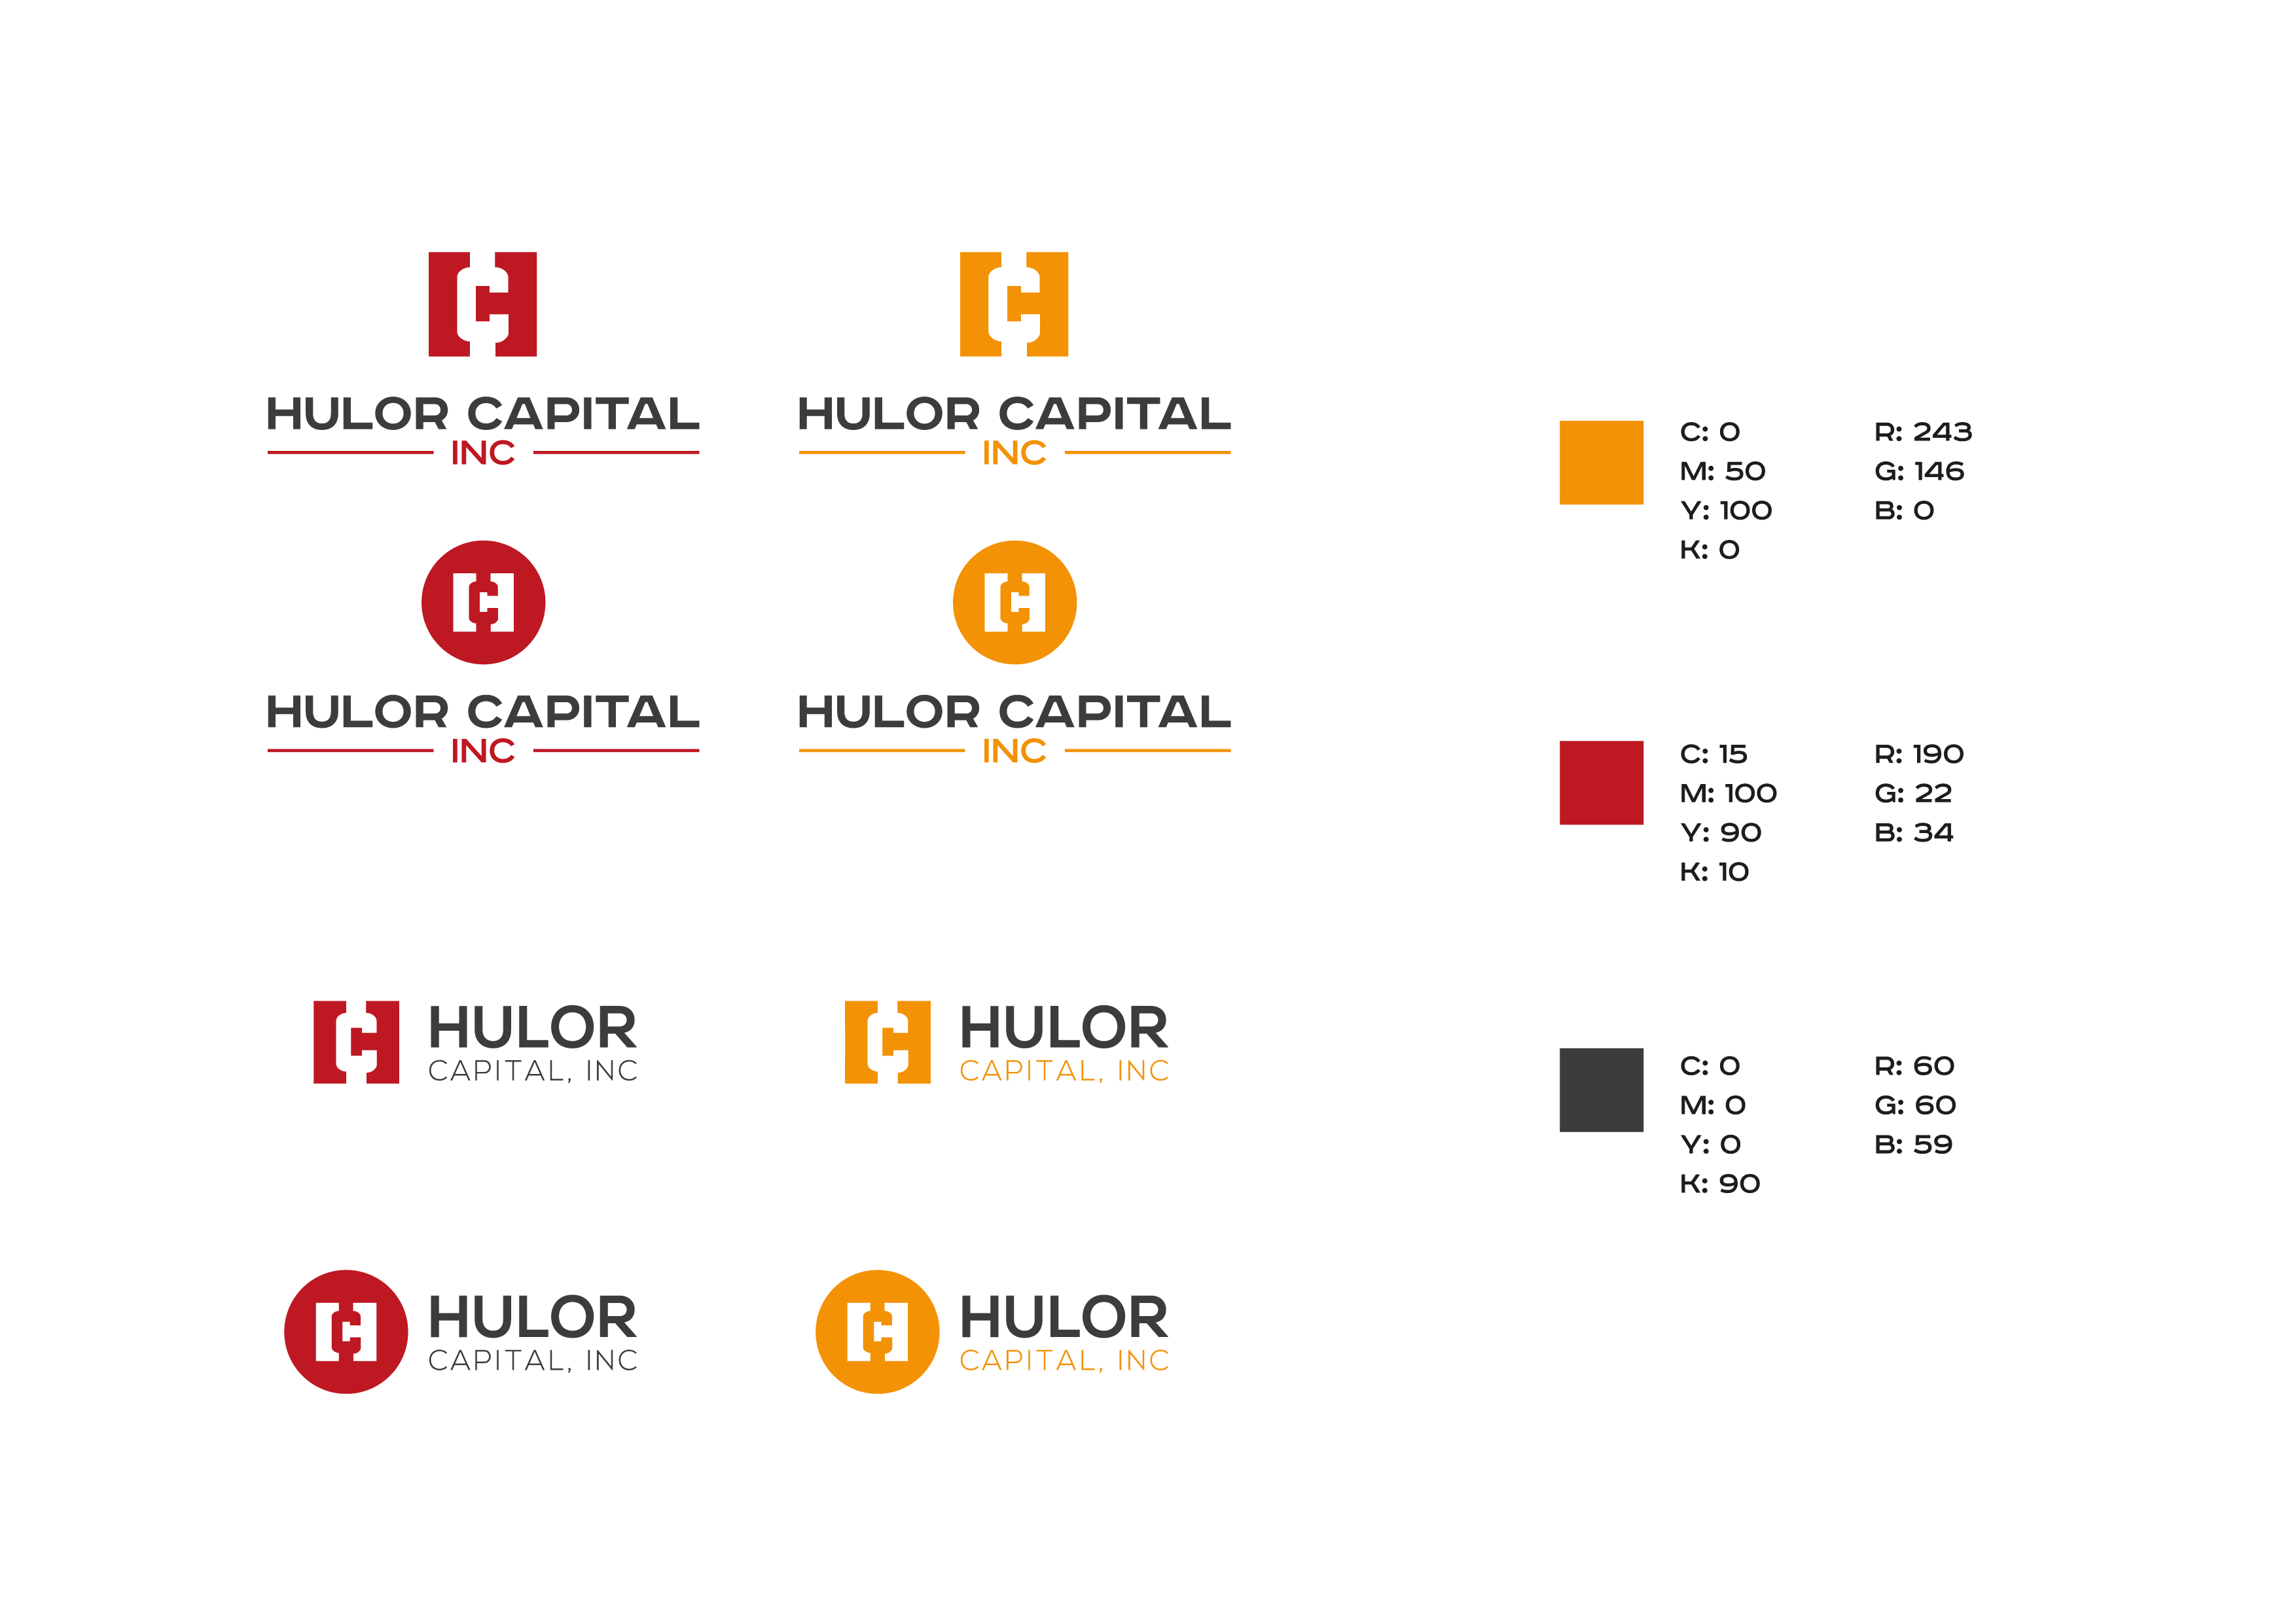 Bitcoin and Crypto Currencies related startup's logo design